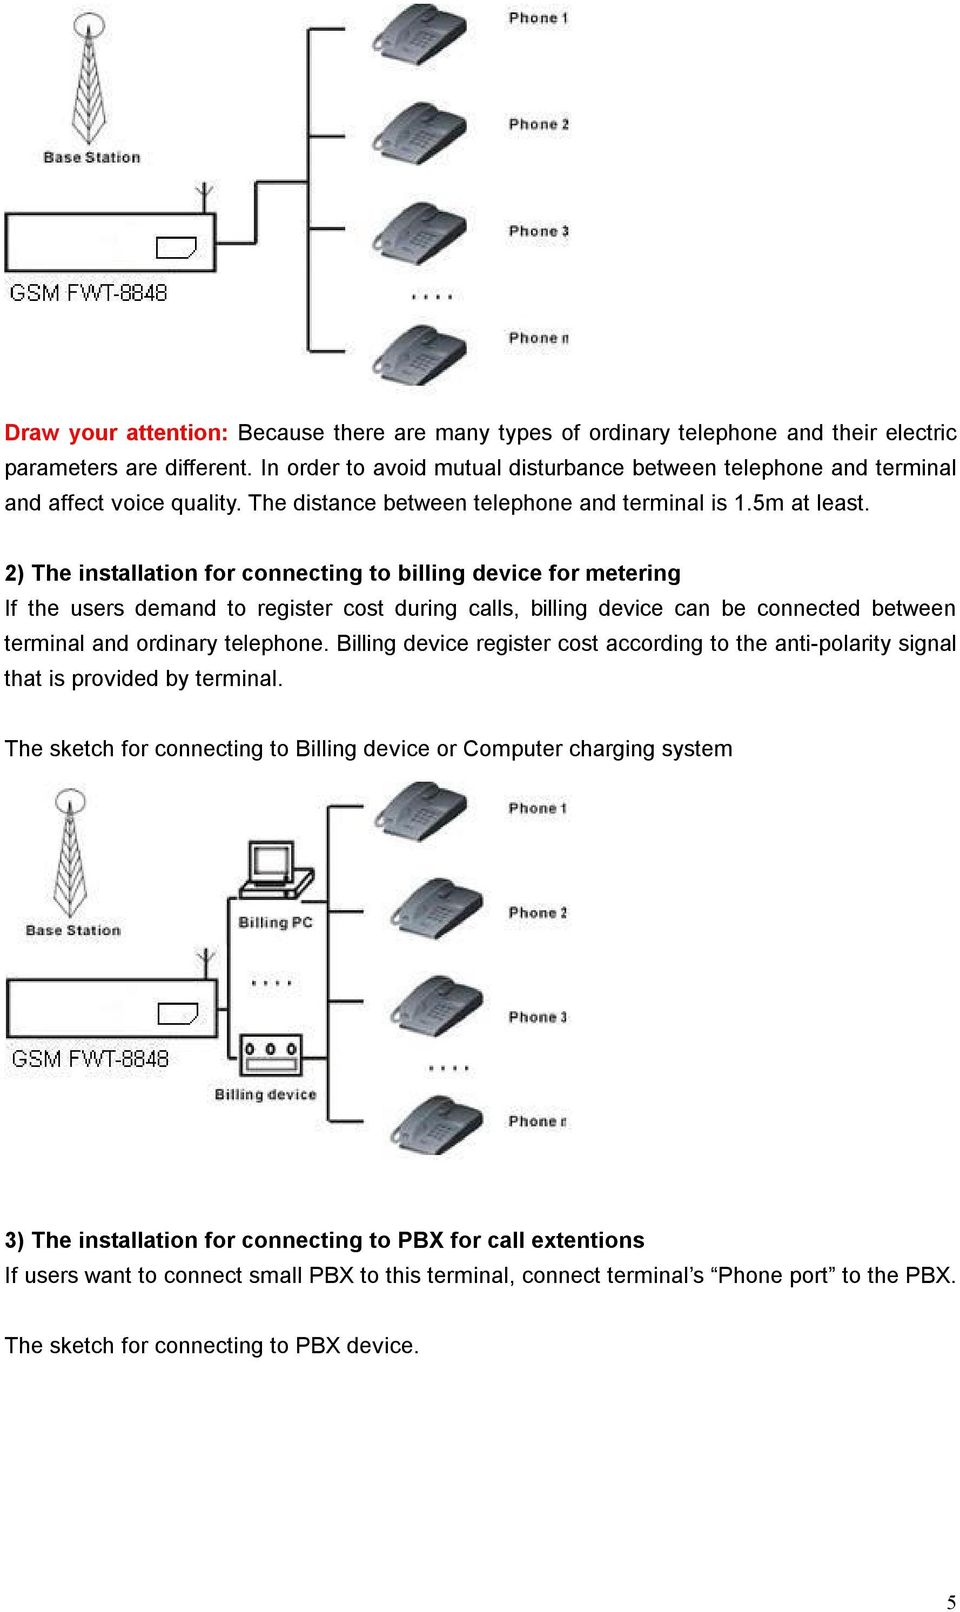 2) The installation for connecting to billing device for metering If the users demand to register cost during calls, billing device can be connected between terminal and ordinary telephone.